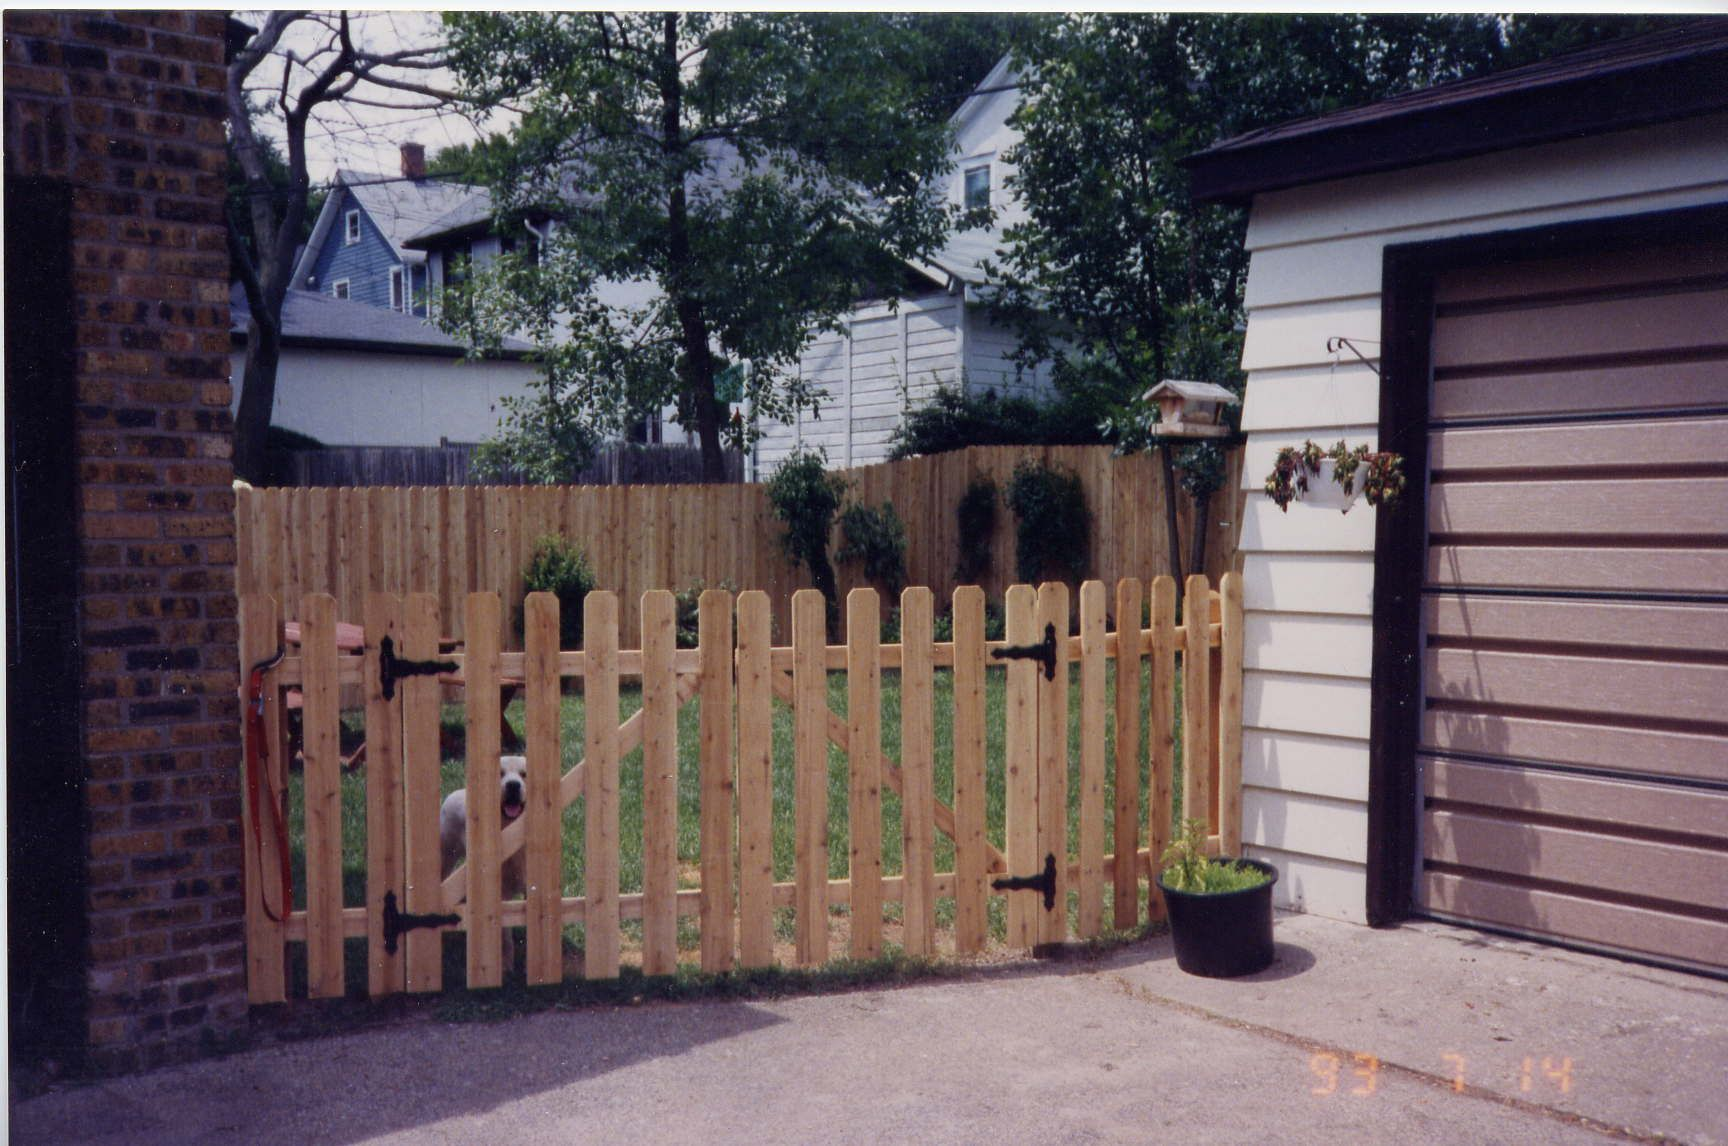 4 Ft Dog Ear Picket Fence With Double Gate Dog Ear Fence Double Gate Picket Fence